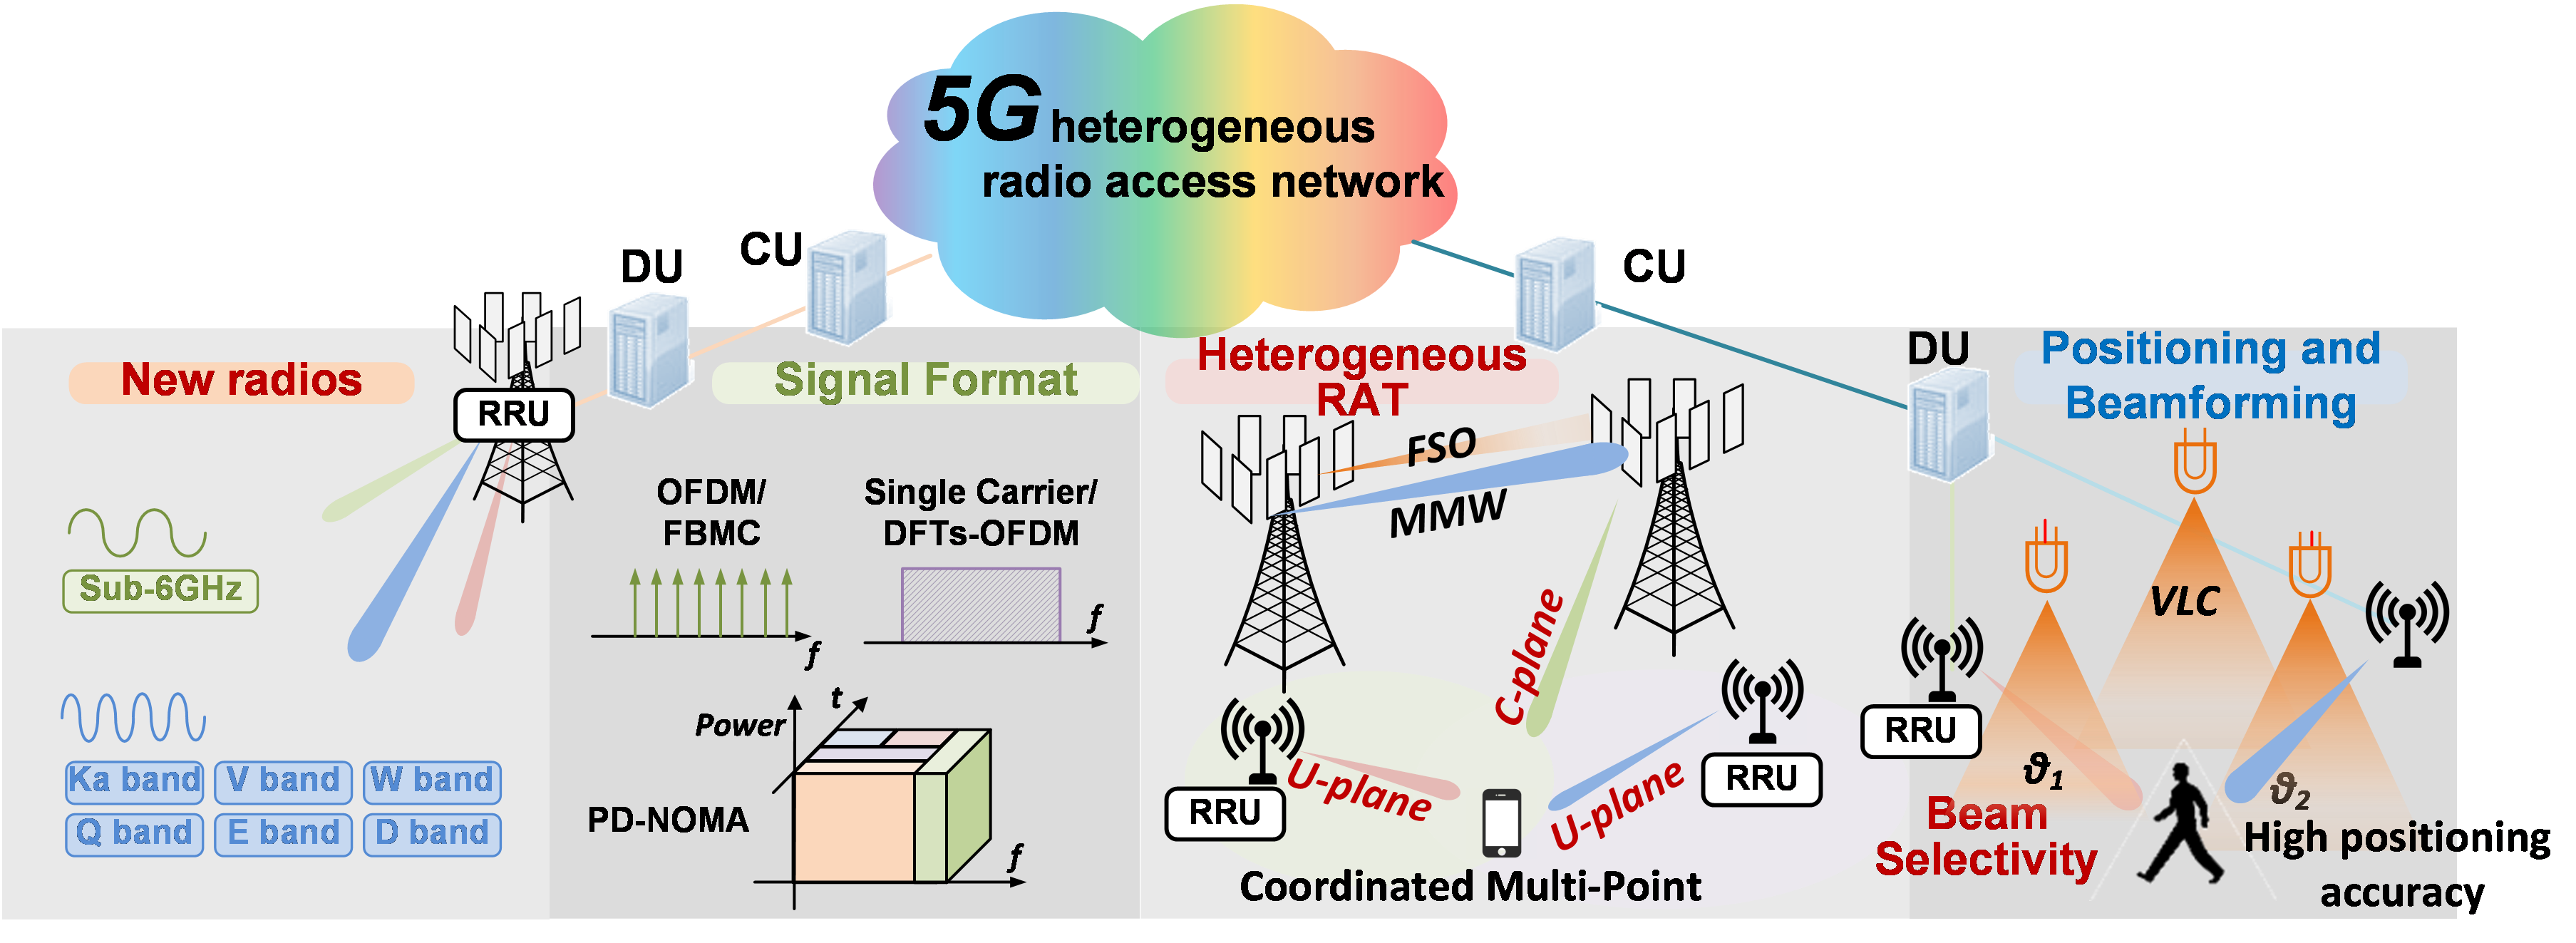 Network Solution - Embracing 5G